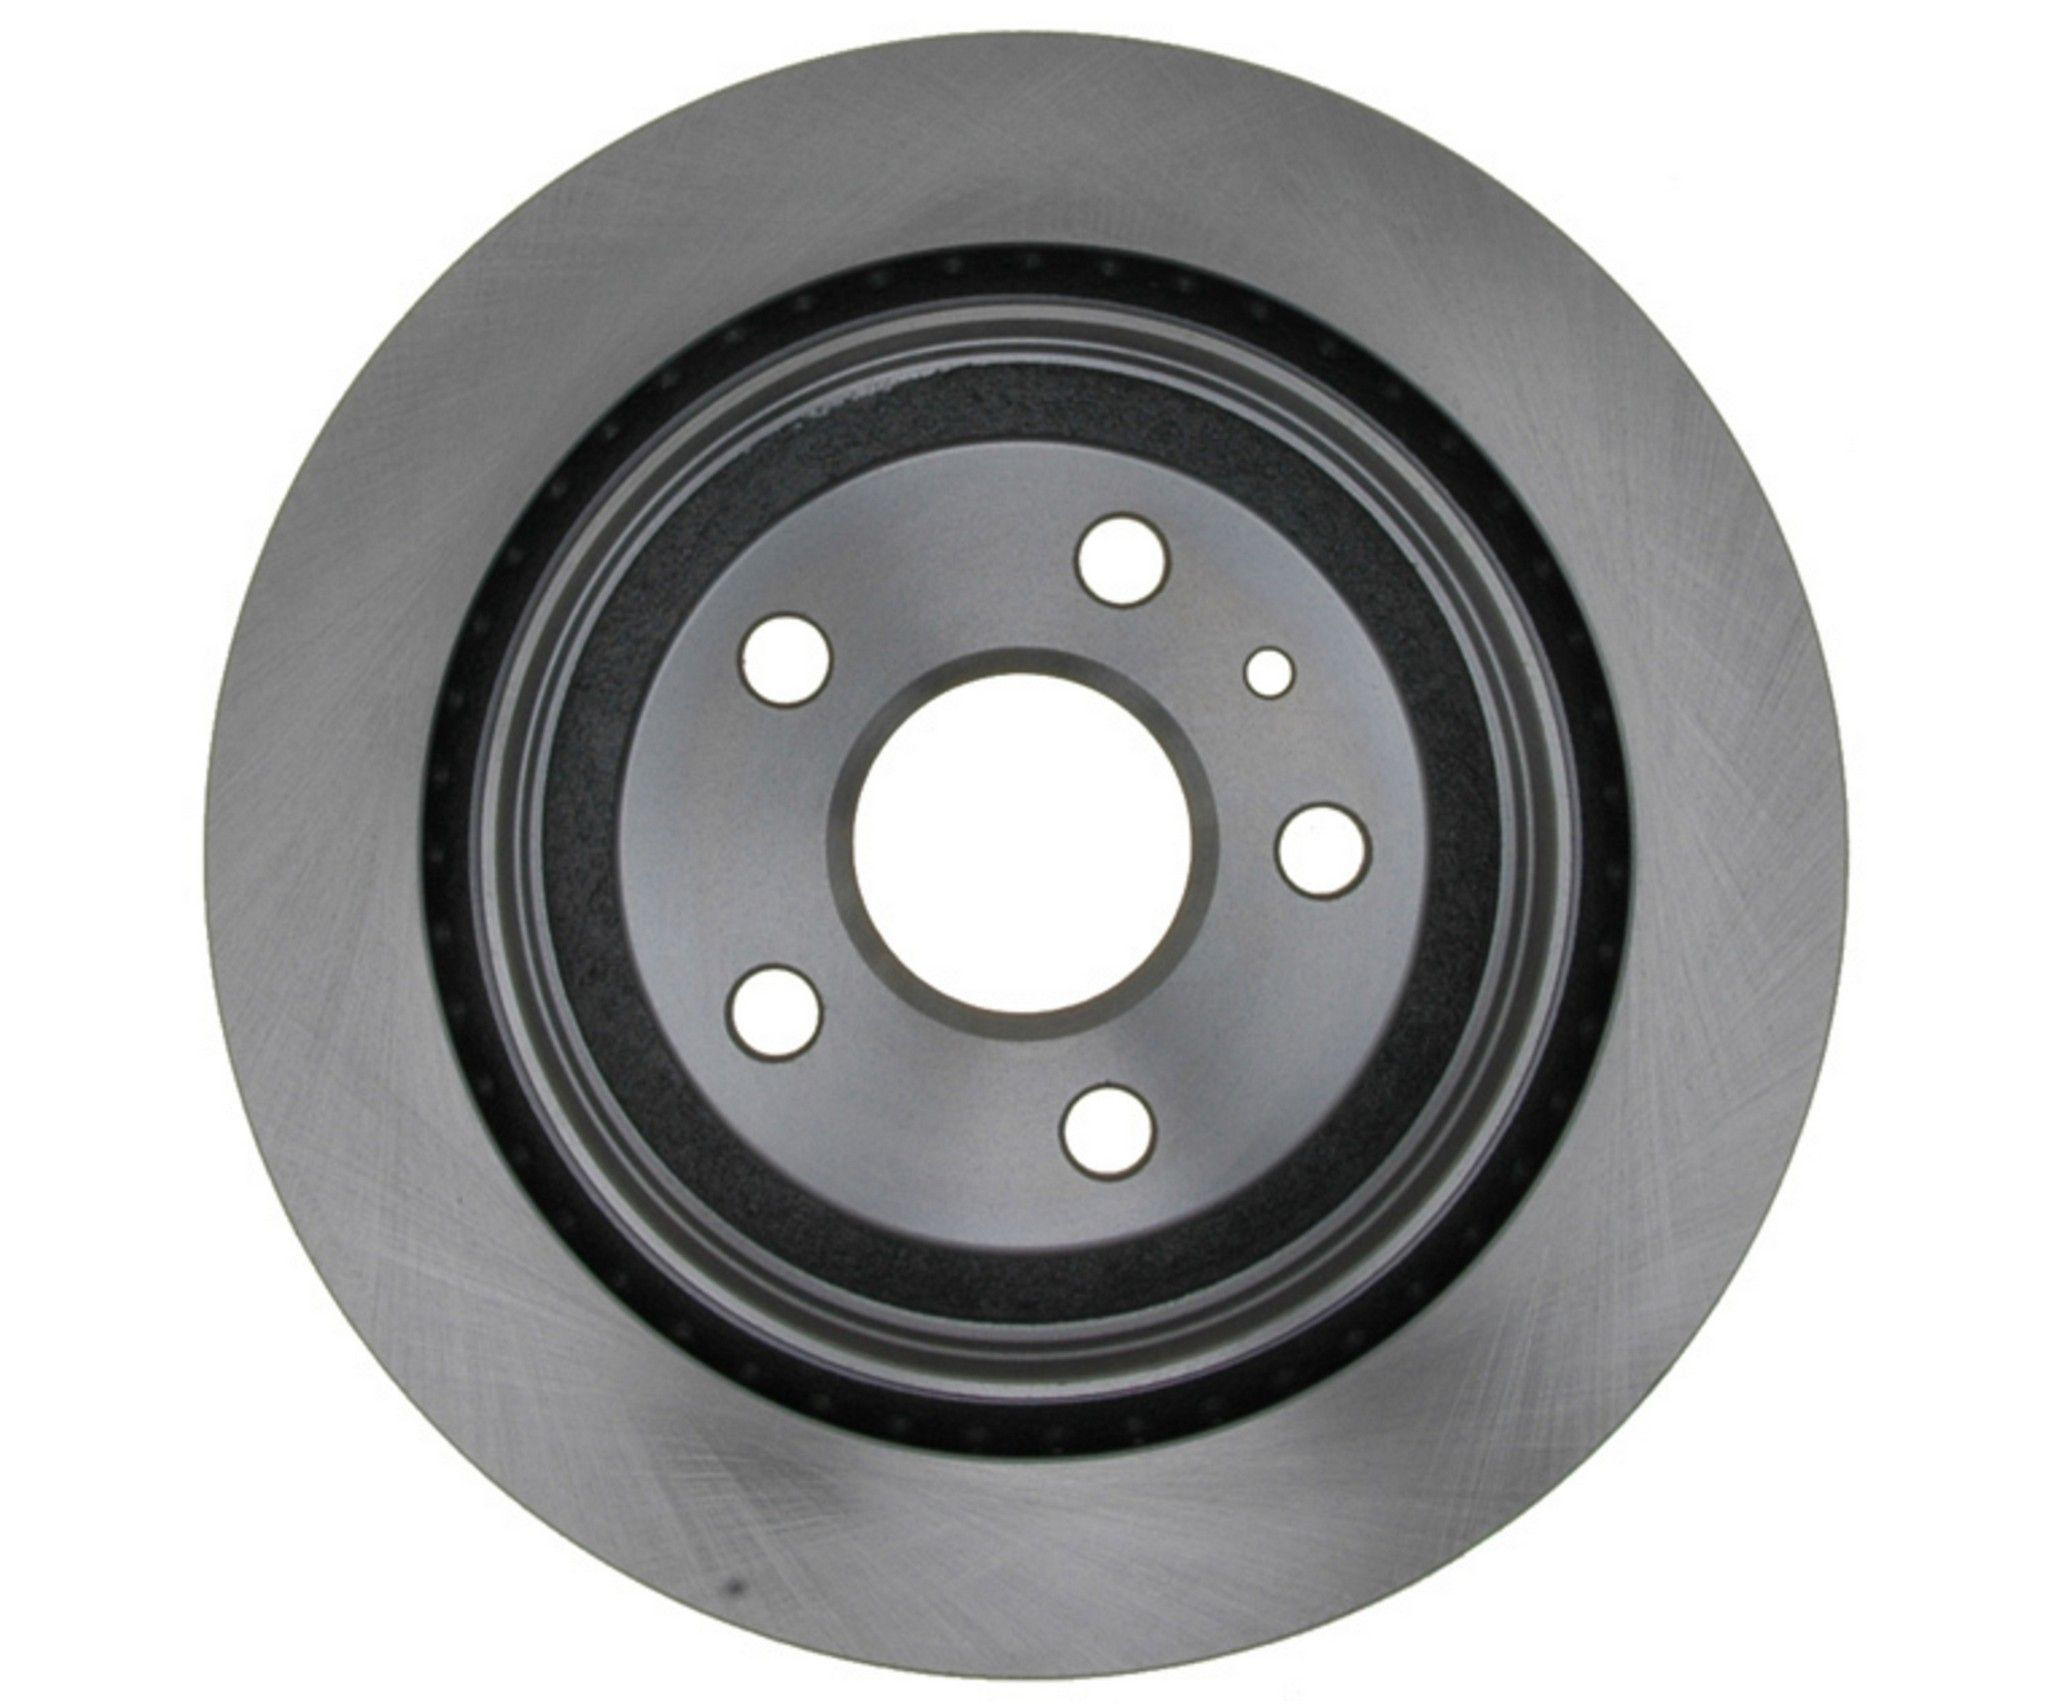 chevrolet camaro disc brake rotor replacement acdelco ate bendix 1940 Chevy Camaro 2010 chevrolet camaro disc brake rotor rear 6 cyl 3 6l raybestos 580722r